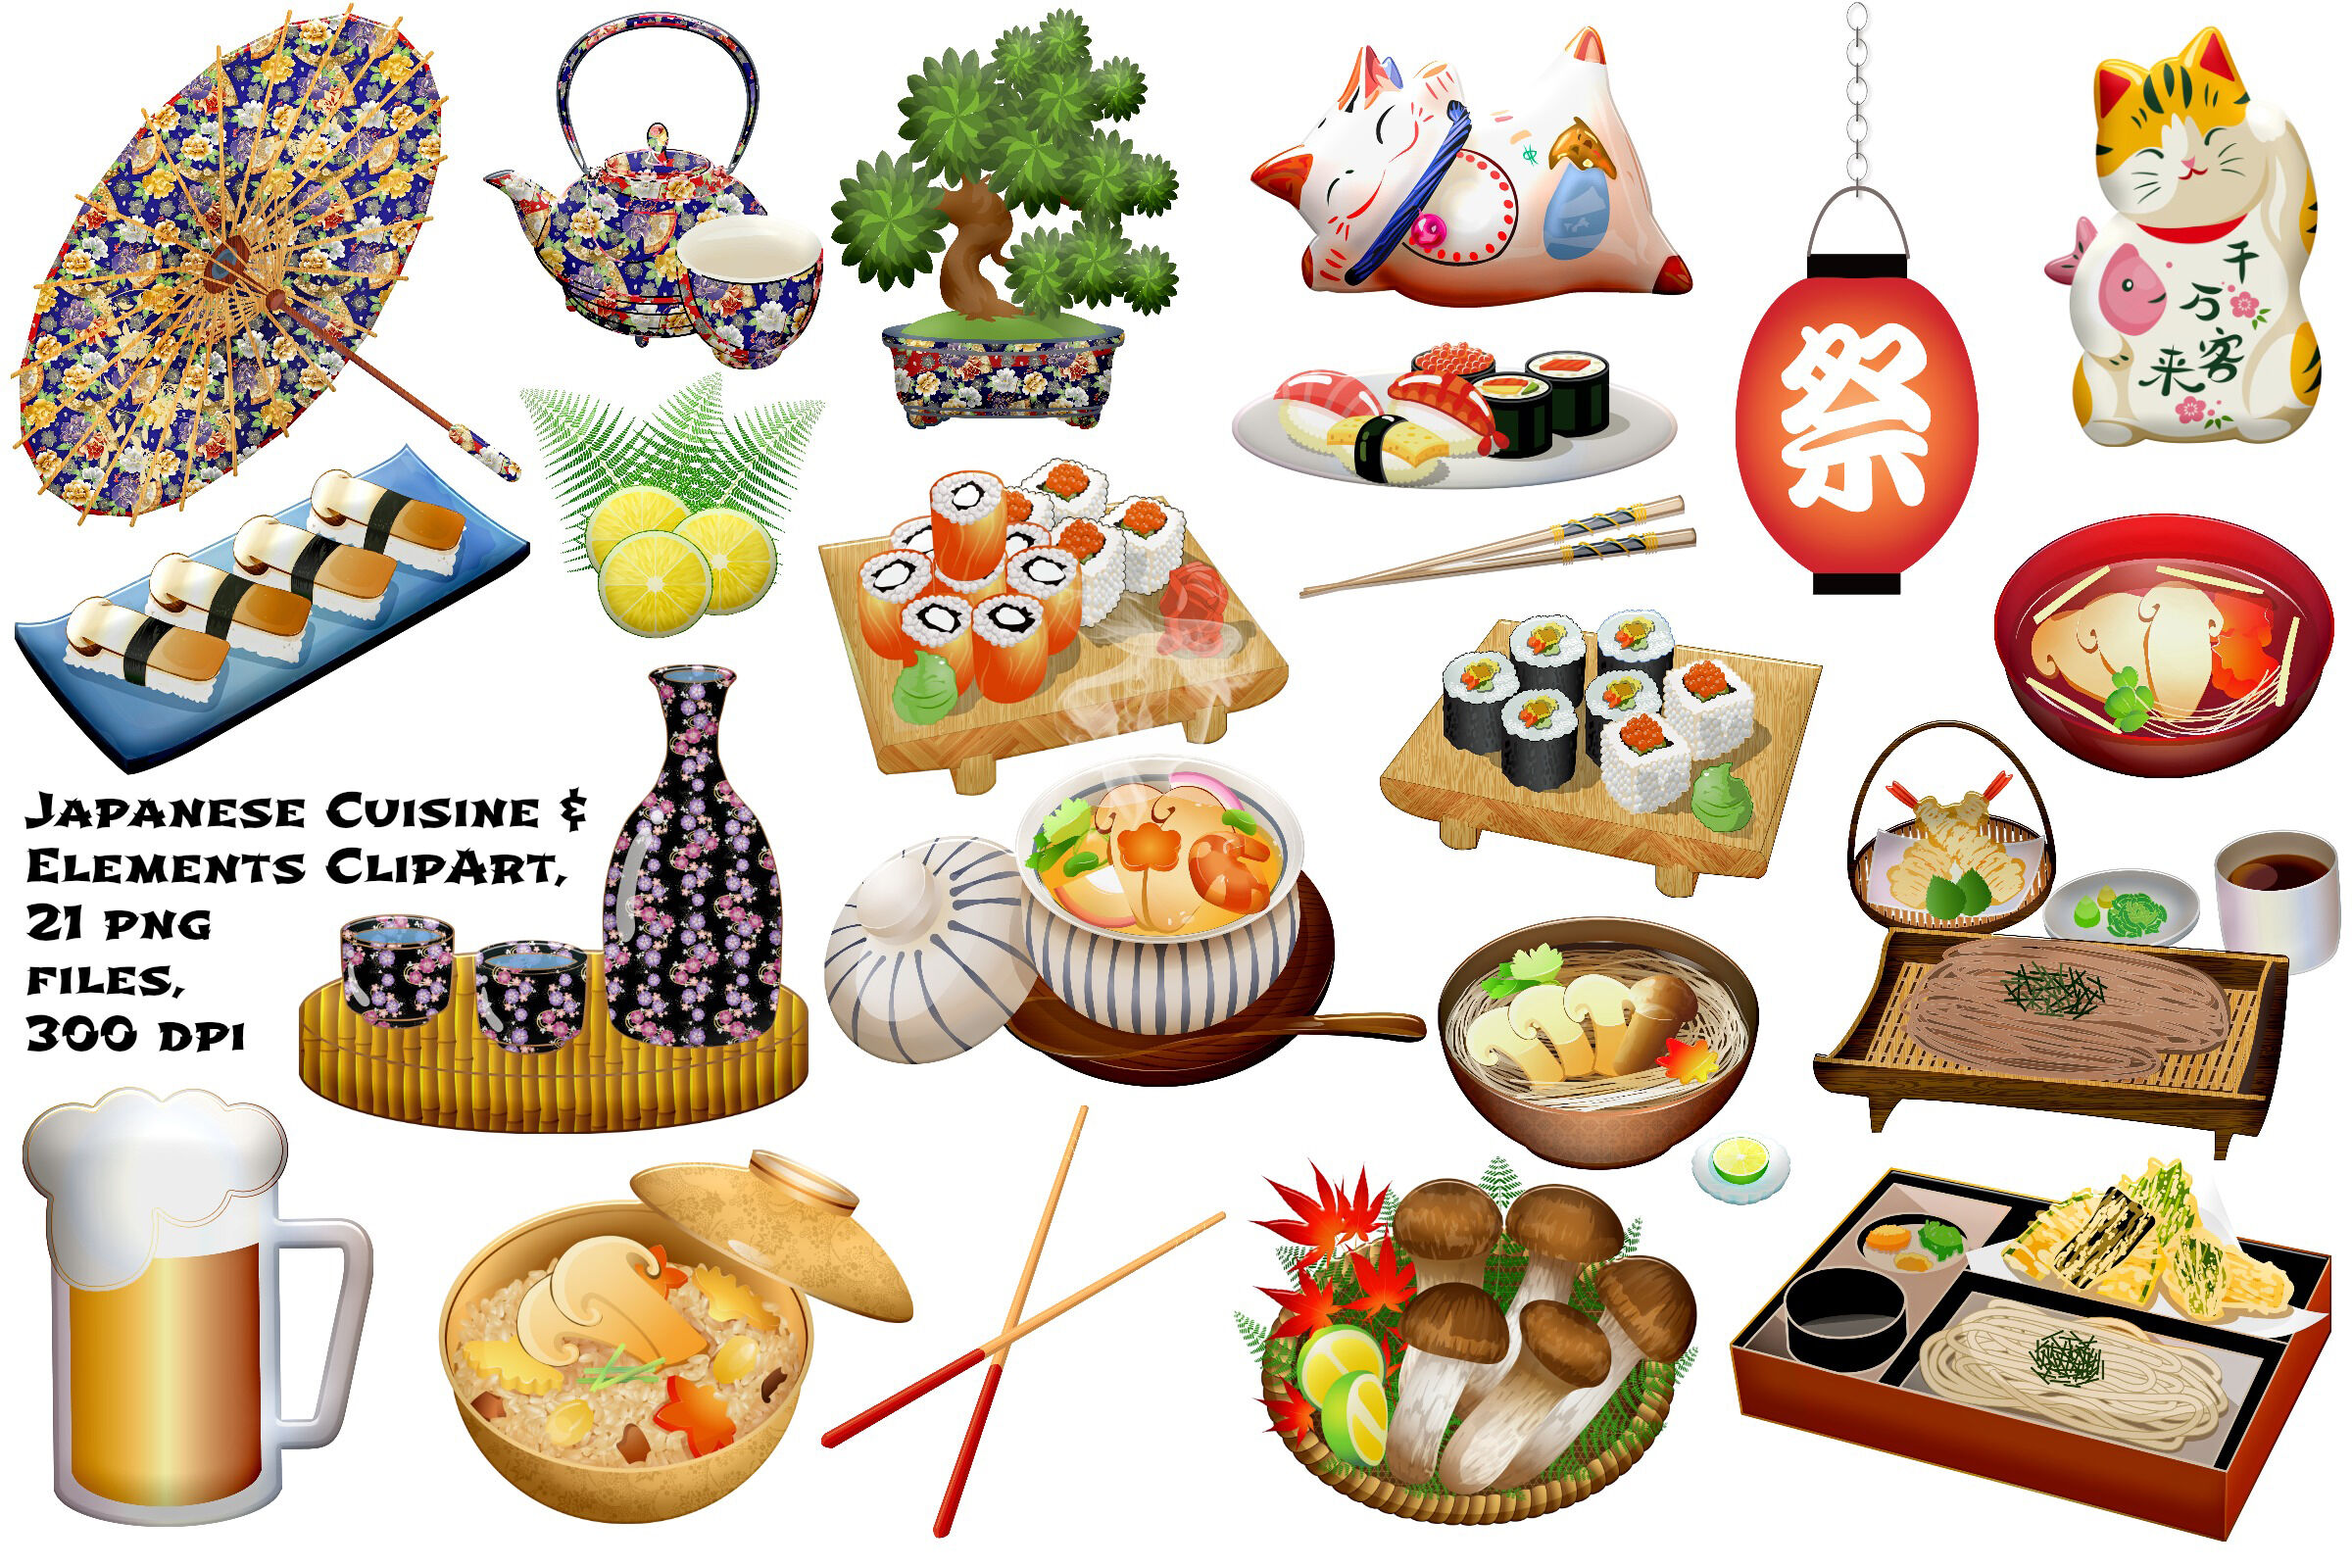 Japanese Food and Elements Clip Art By Me and Ameliè.